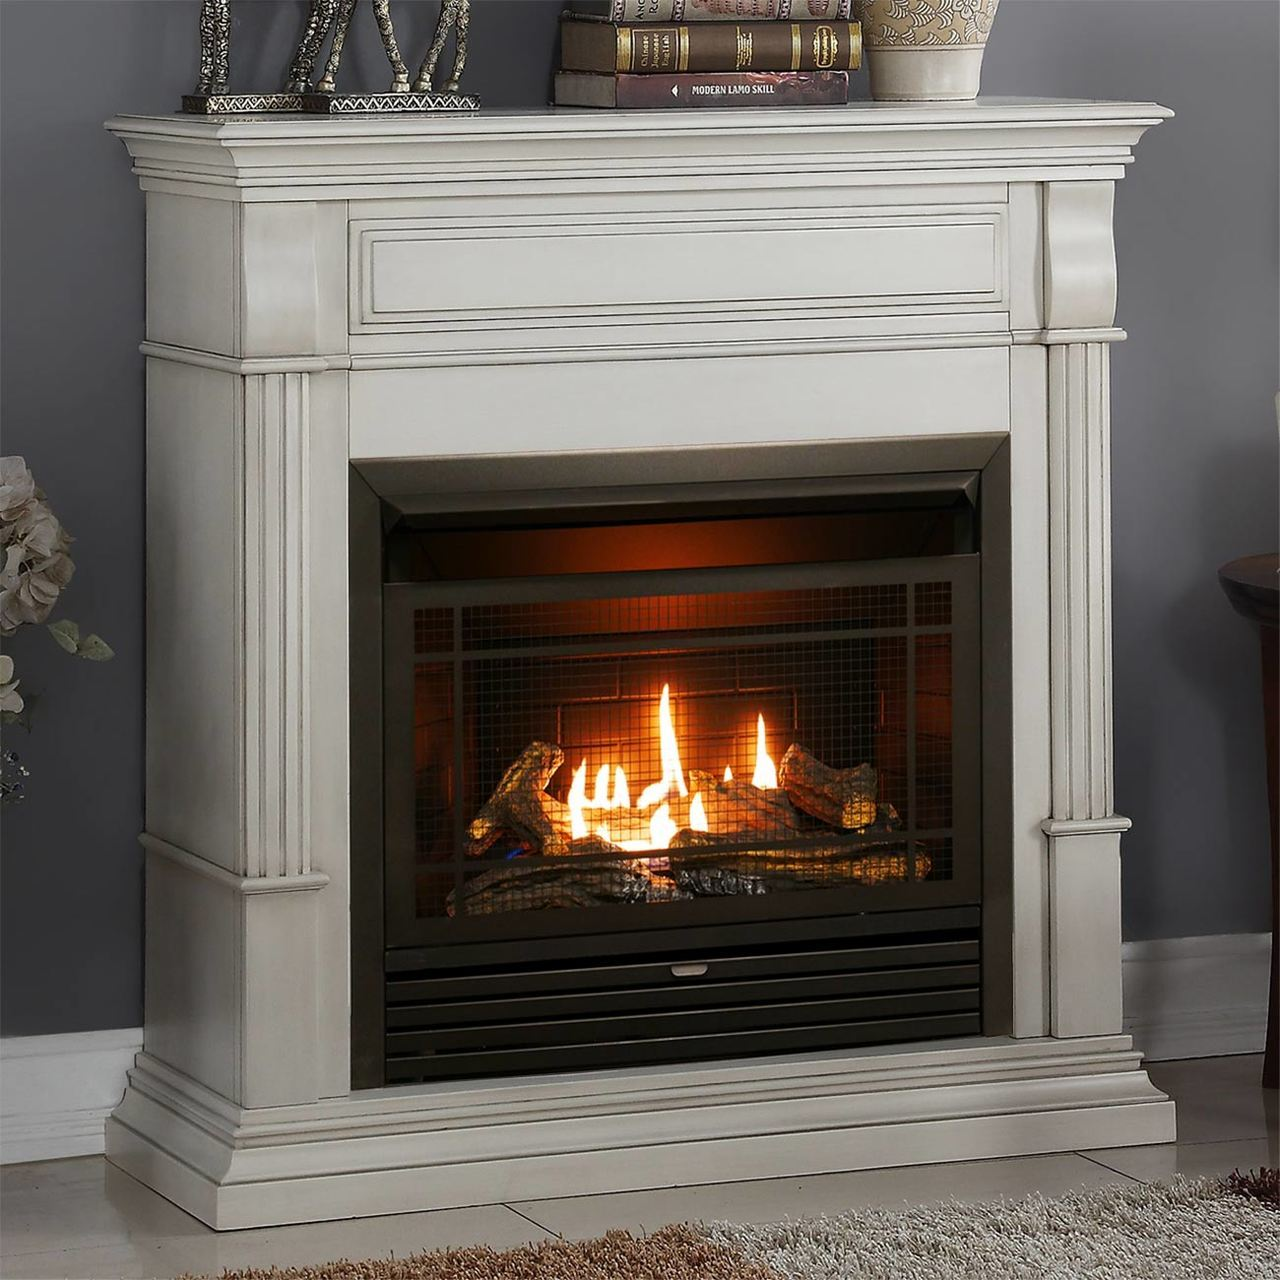 Gas Fireplace: Factory Buys Direct: Duluth Forge Dual Fuel Ventless Gas